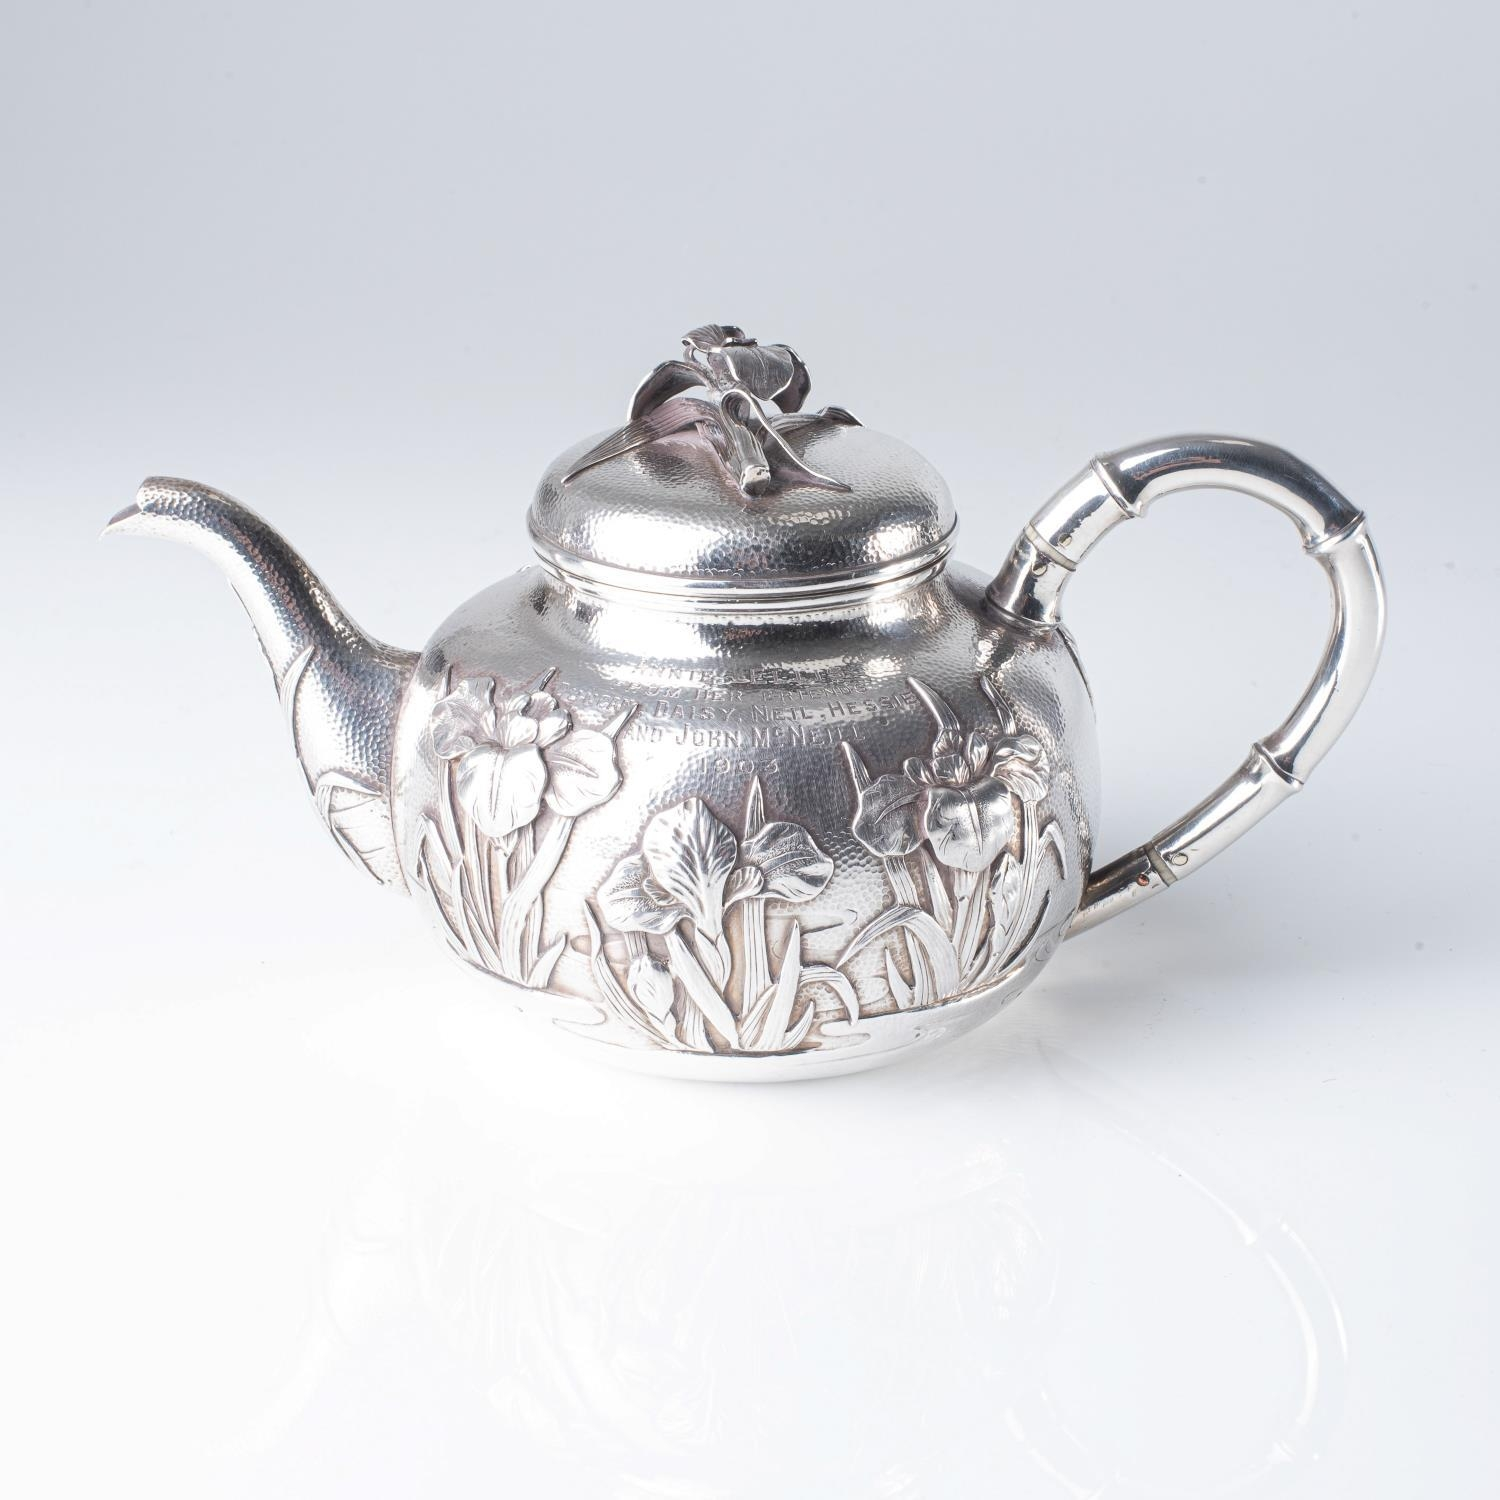 A JAPANESE SILVER TEAPOT - Image 2 of 2